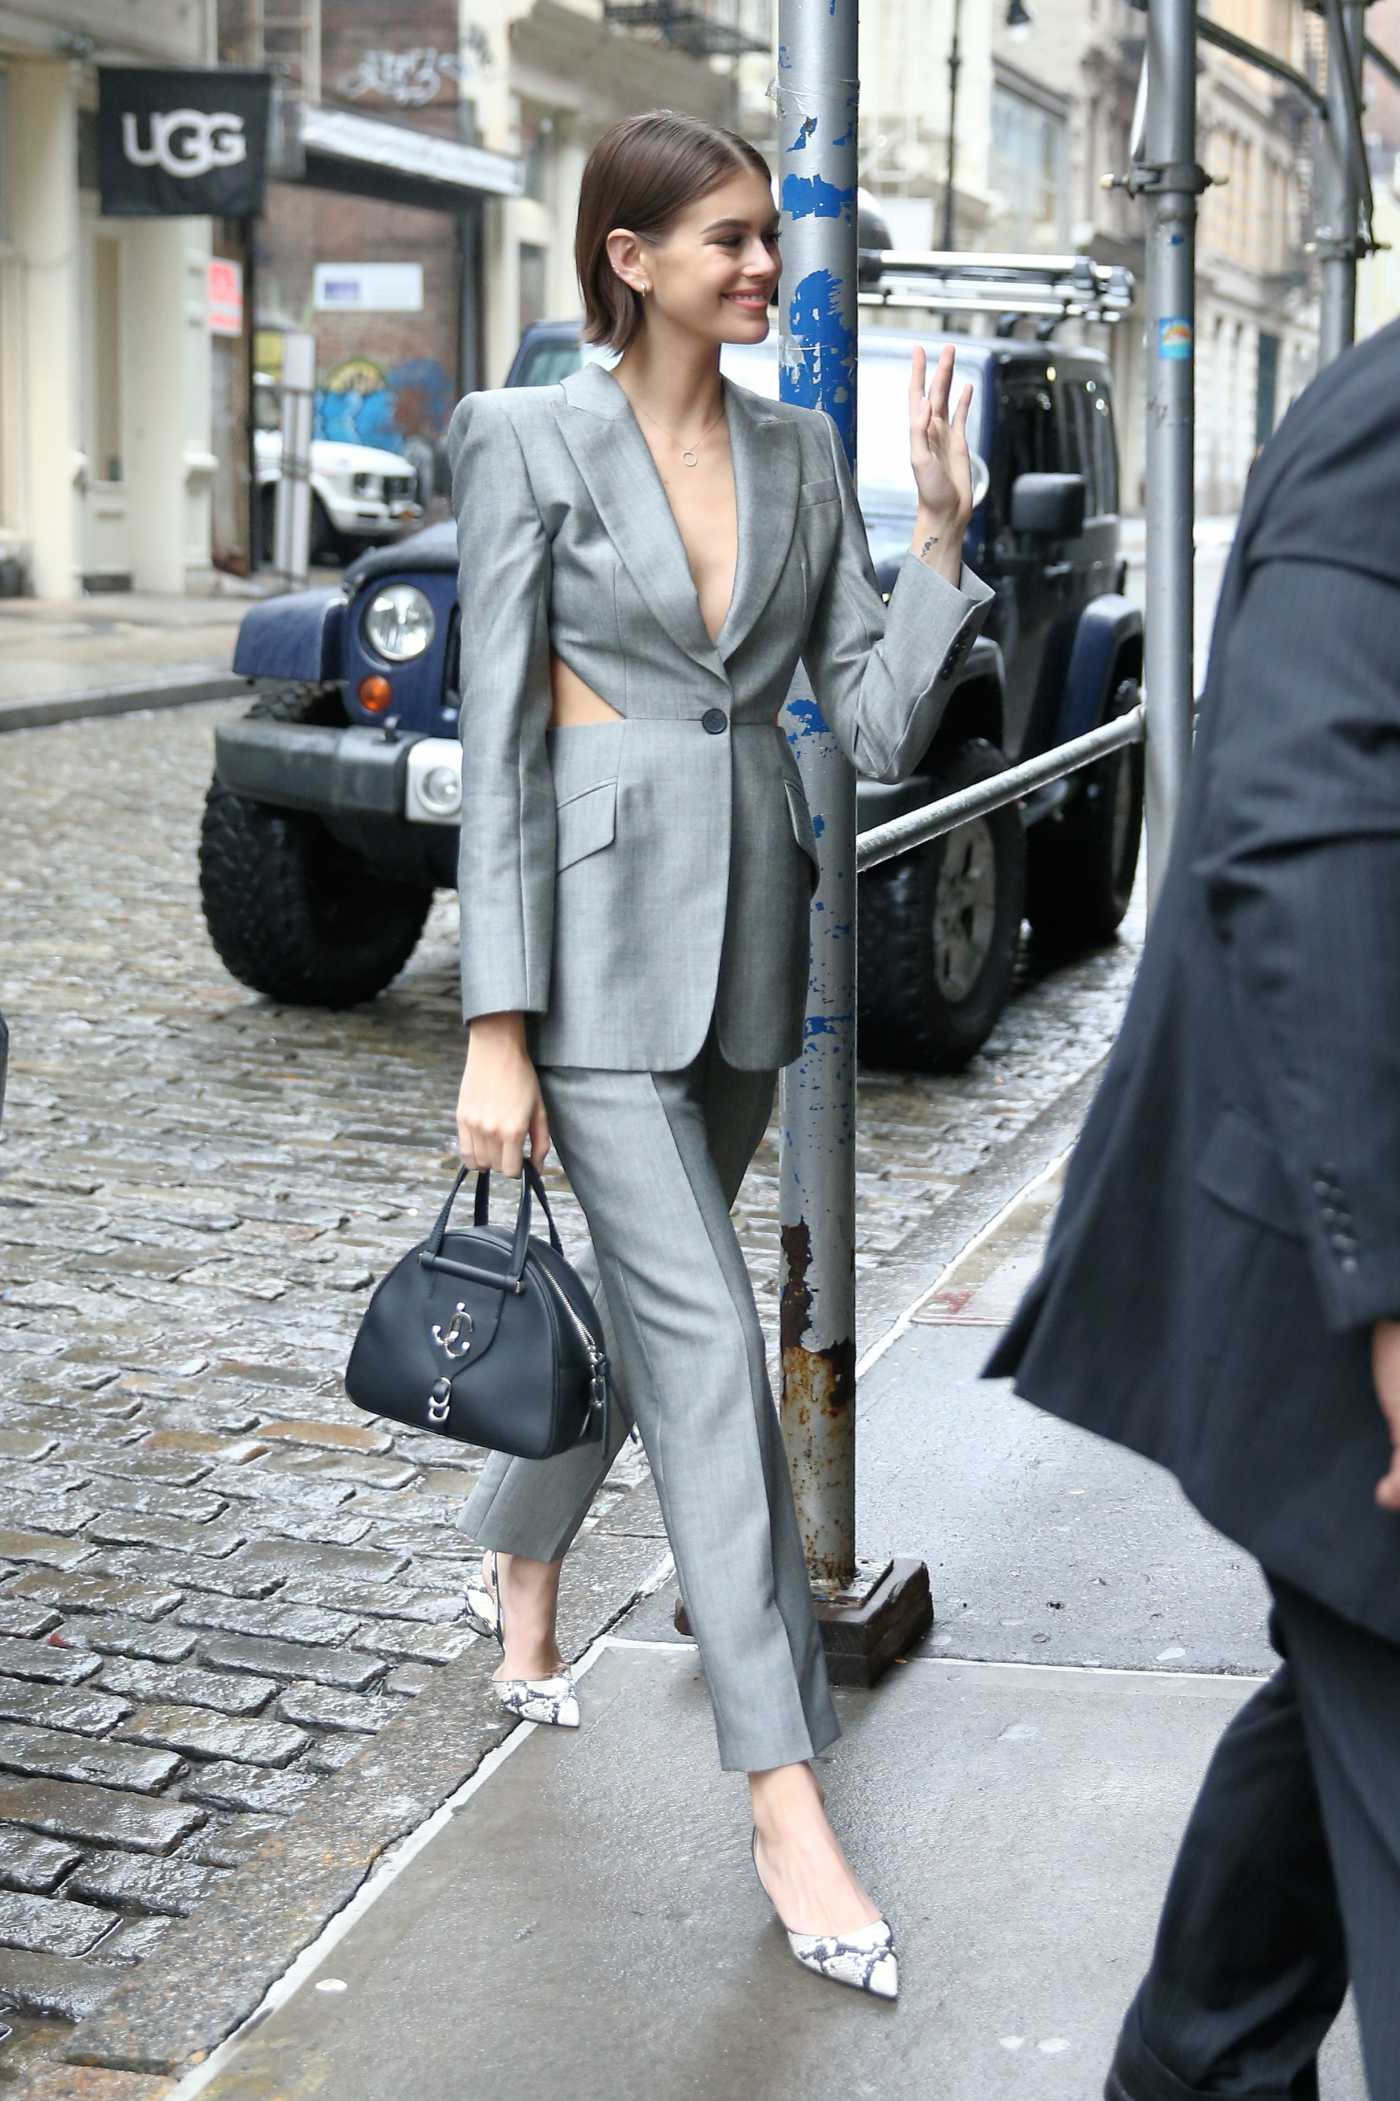 Kaia Gerber in a Gray Suit Was Seen Out in New York City 02/06/2020